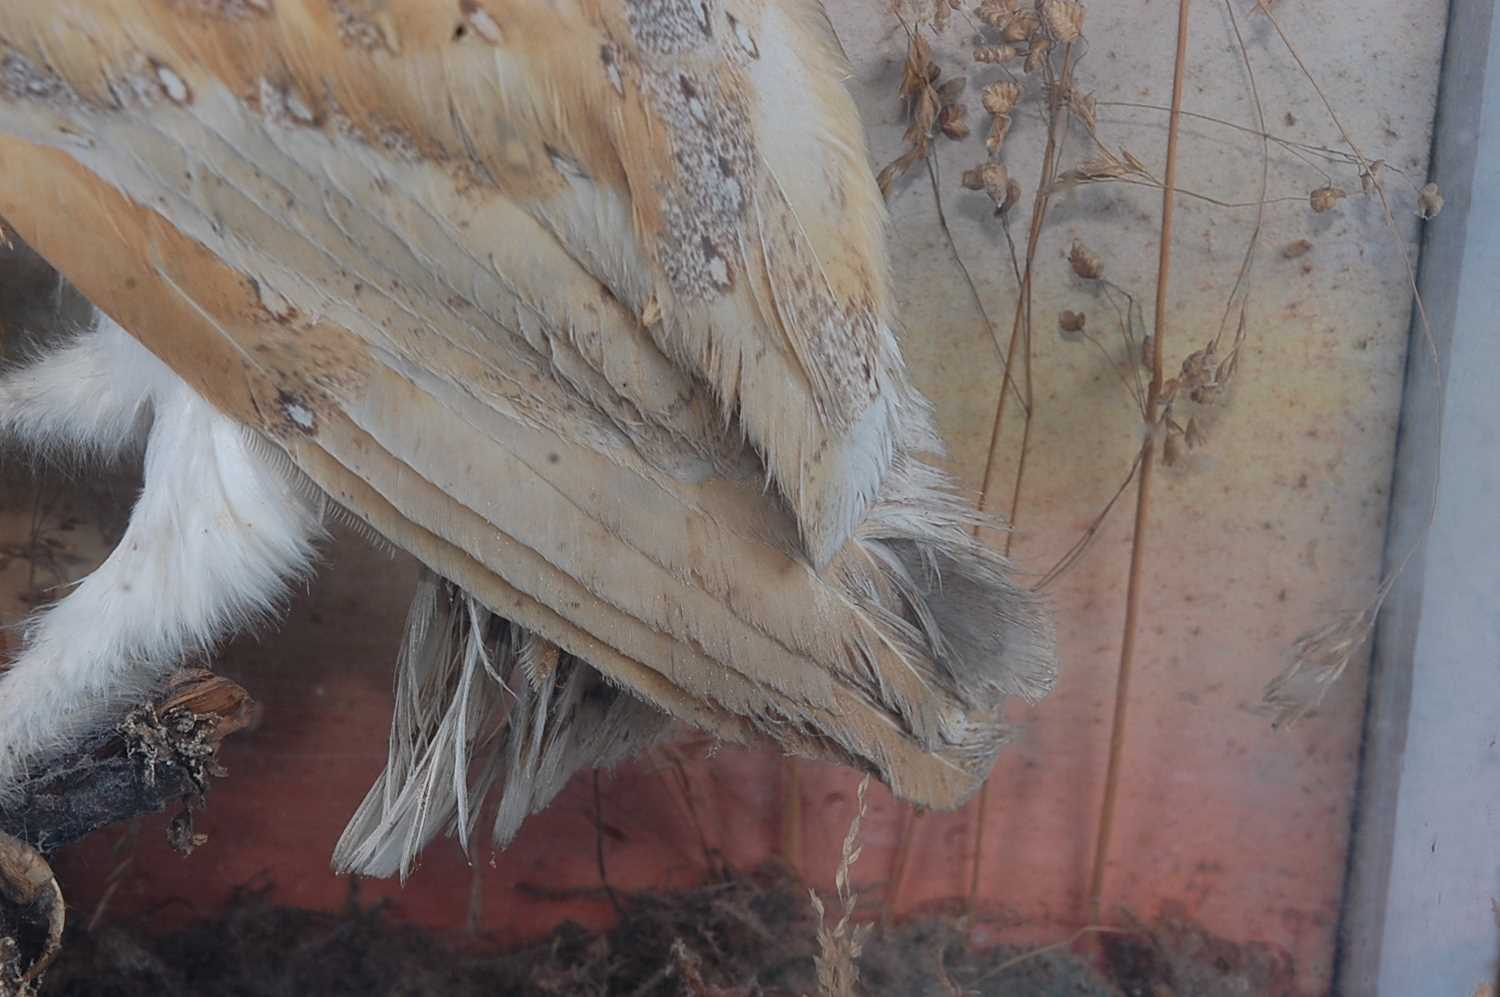 A brace of early 20th century taxidermy Barn owls (Tyto alba), each mounted facing the other in a - Image 7 of 9